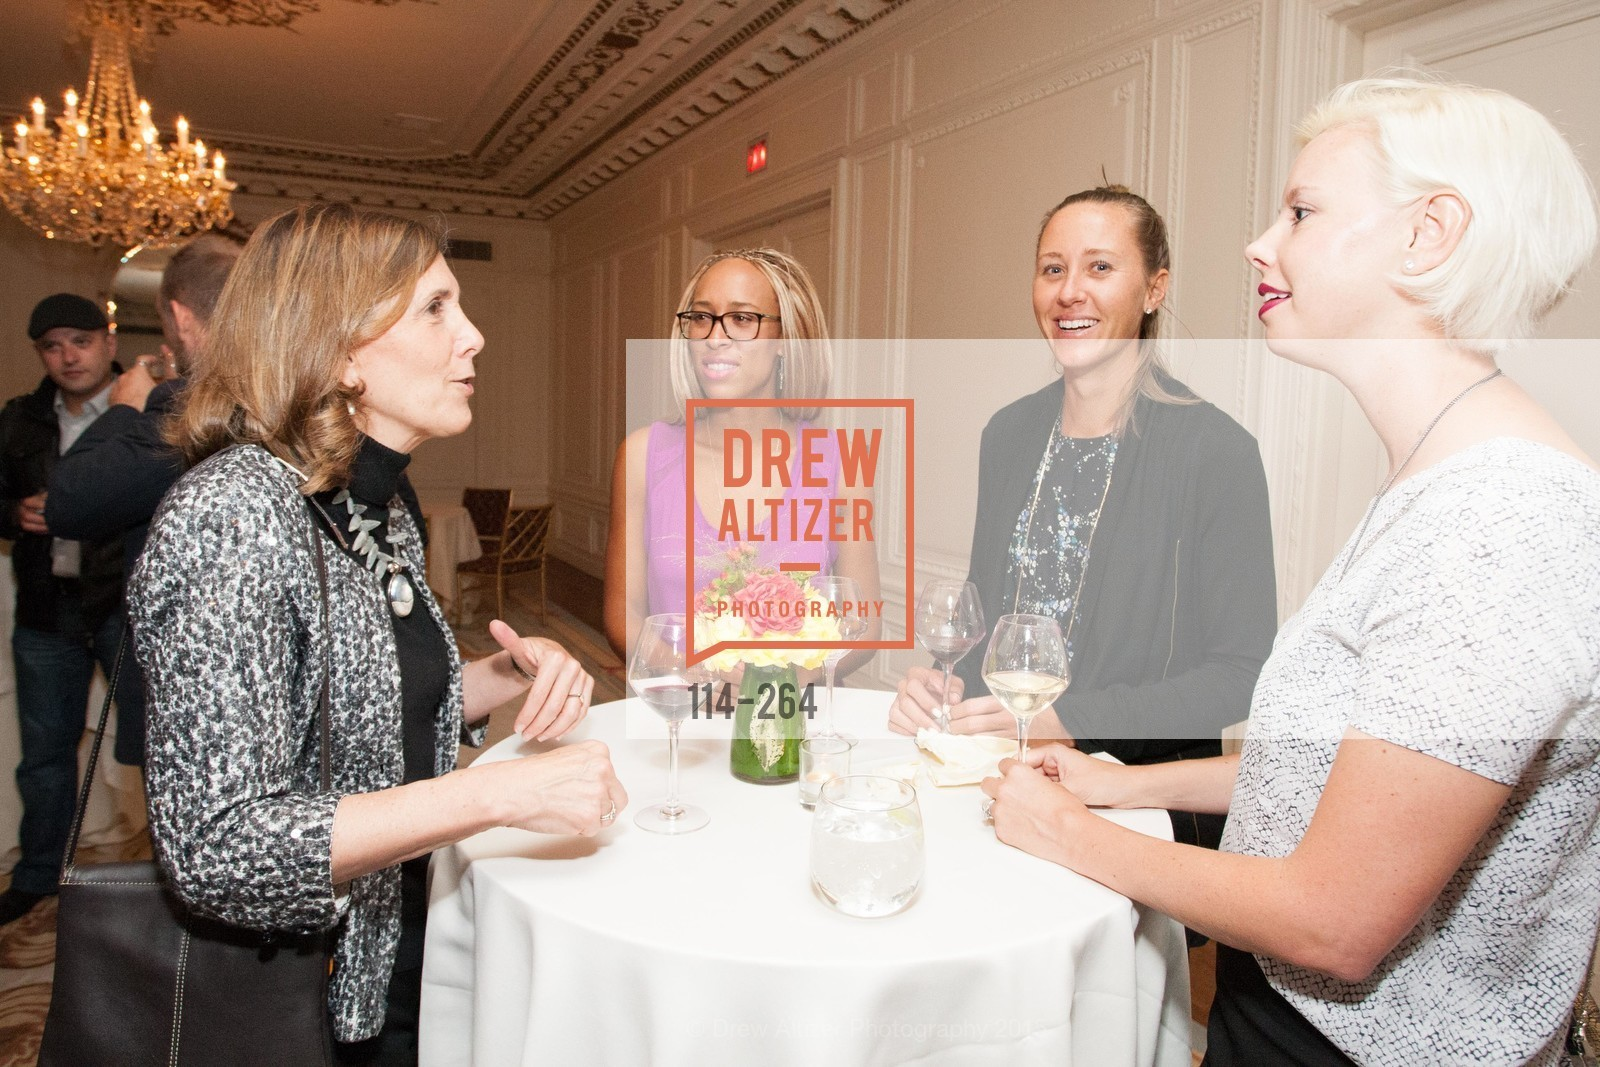 Micki Klearman, Charlotte Scatliffe, Kady Pooler, Kristen Heller, Shanti's Compassion is Universal 41st Anniversary Preview Reception, Palace Hotel. 2 Montgomery Street, August 25th, 2015,Drew Altizer, Drew Altizer Photography, full-service agency, private events, San Francisco photographer, photographer california